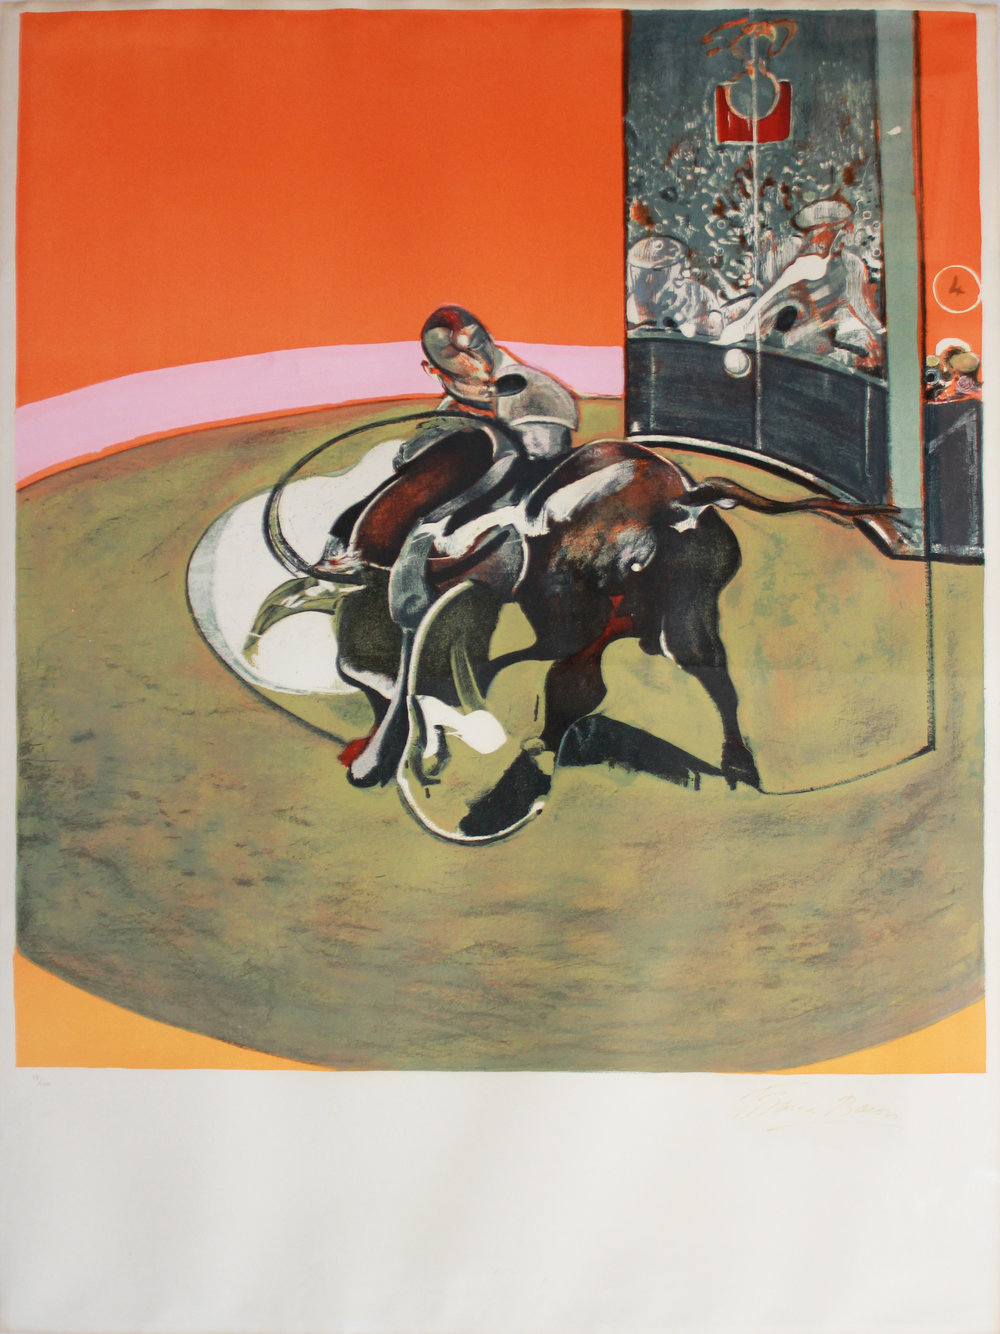 Francis Bacon   Study for a Bullfight no. 1 , 1971 Lithograph on Arches Signed in felt tip pen on recto, signature faded, numbered in pencil Edition of 150 Published by the Musée du Grand Palais Image: 50 x 45 inches; Sheet: 62.5 x 47 inches; Framed: 69 x 53 inches Estimate: $60,000/$80,000